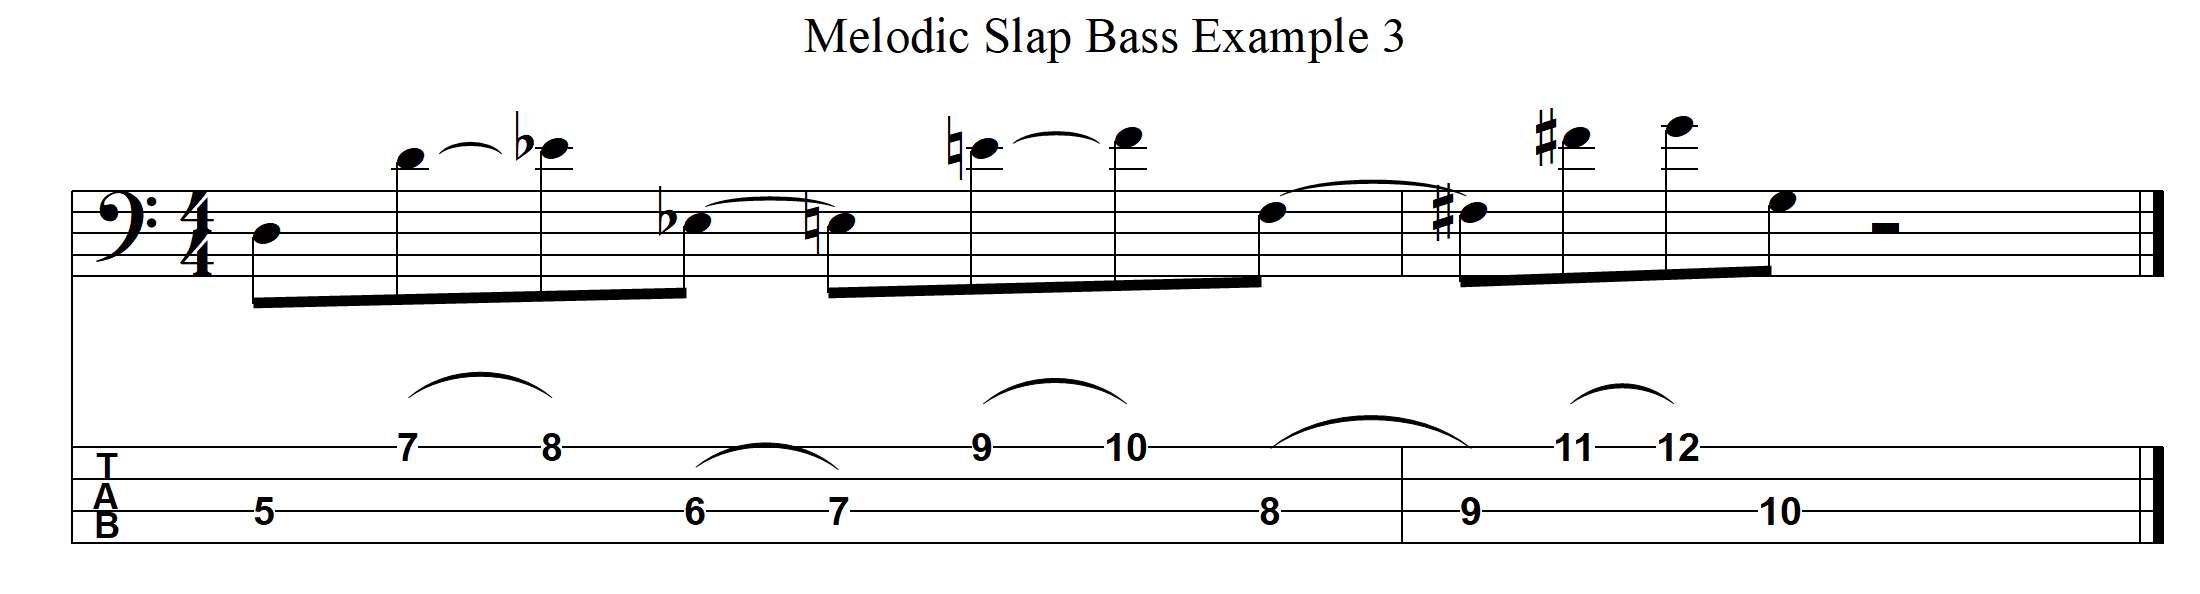 Melodic Slap Bass Example 3